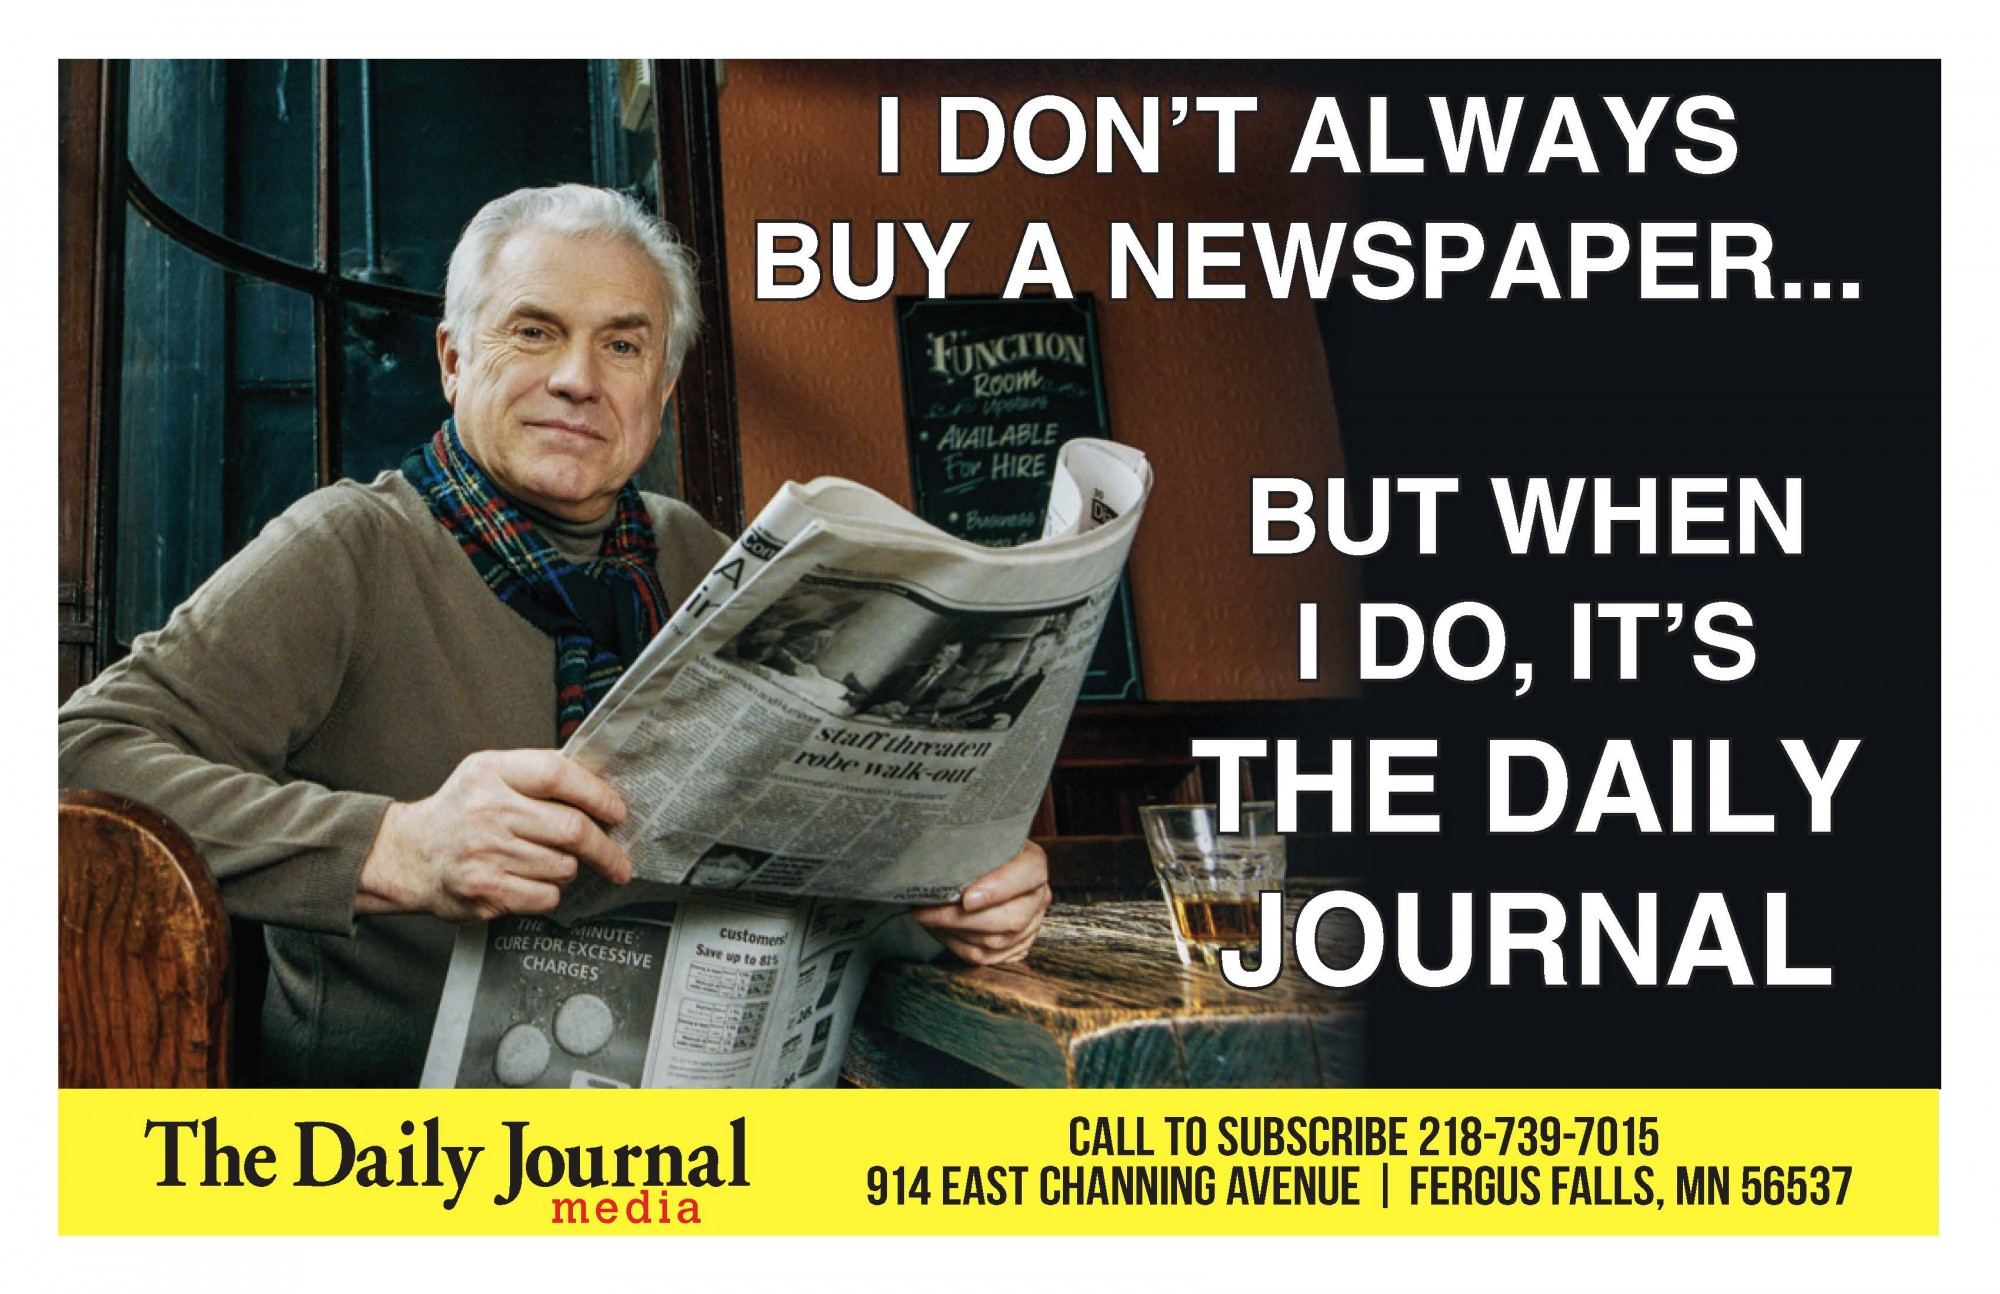 I don't always buy a newspaper, but when I do....